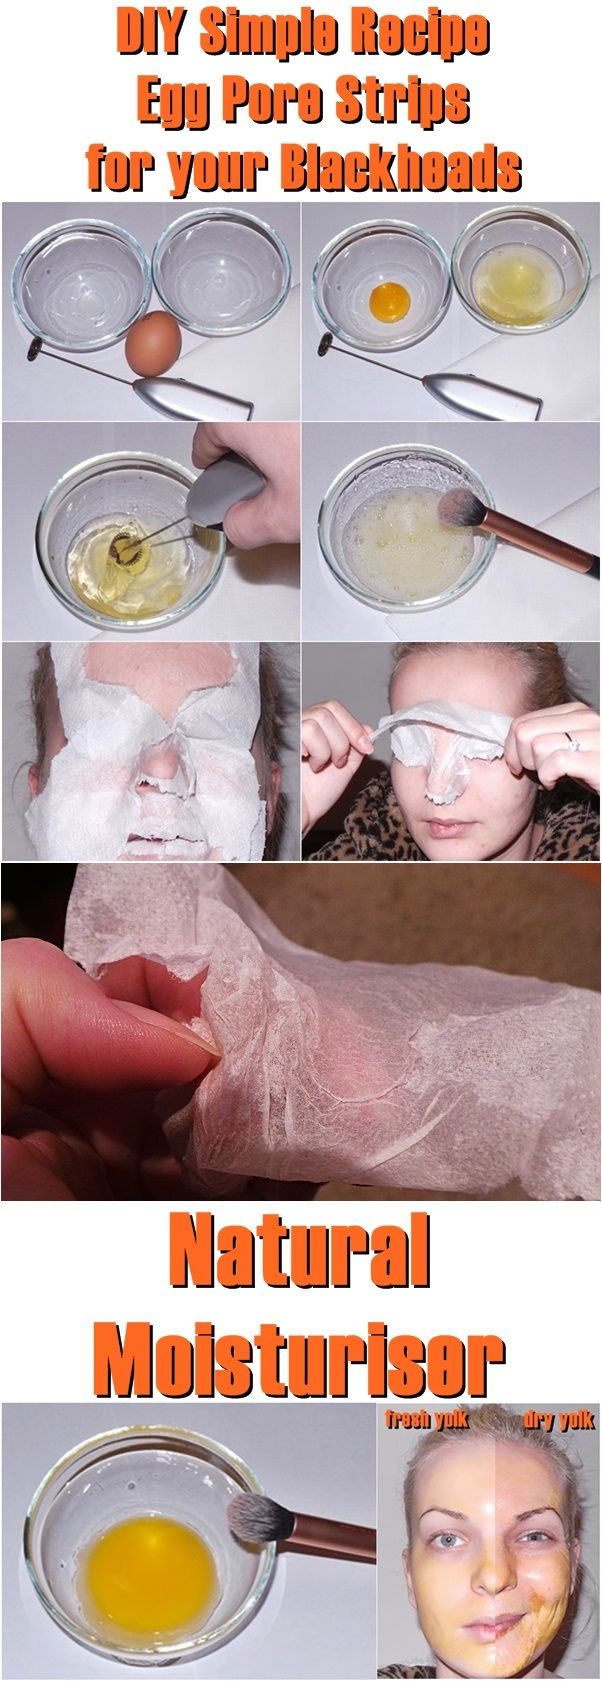 DIY Simple Recipe Egg Pore Strips for your Blackheads